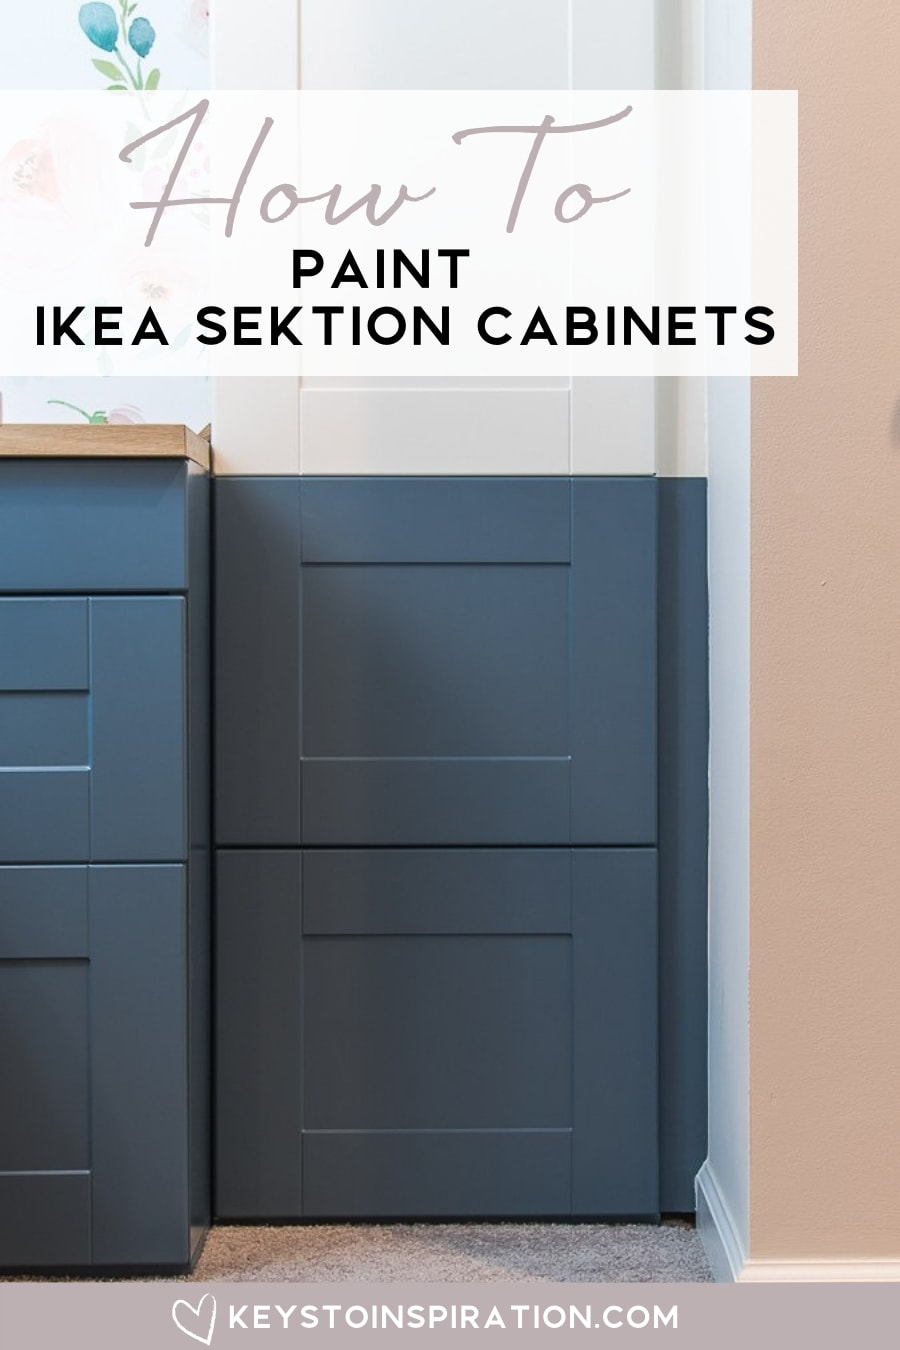 86778ed2f5ef How to Paint IKEA SEKTION Cabinets {One Room Challenge Week 4 ...